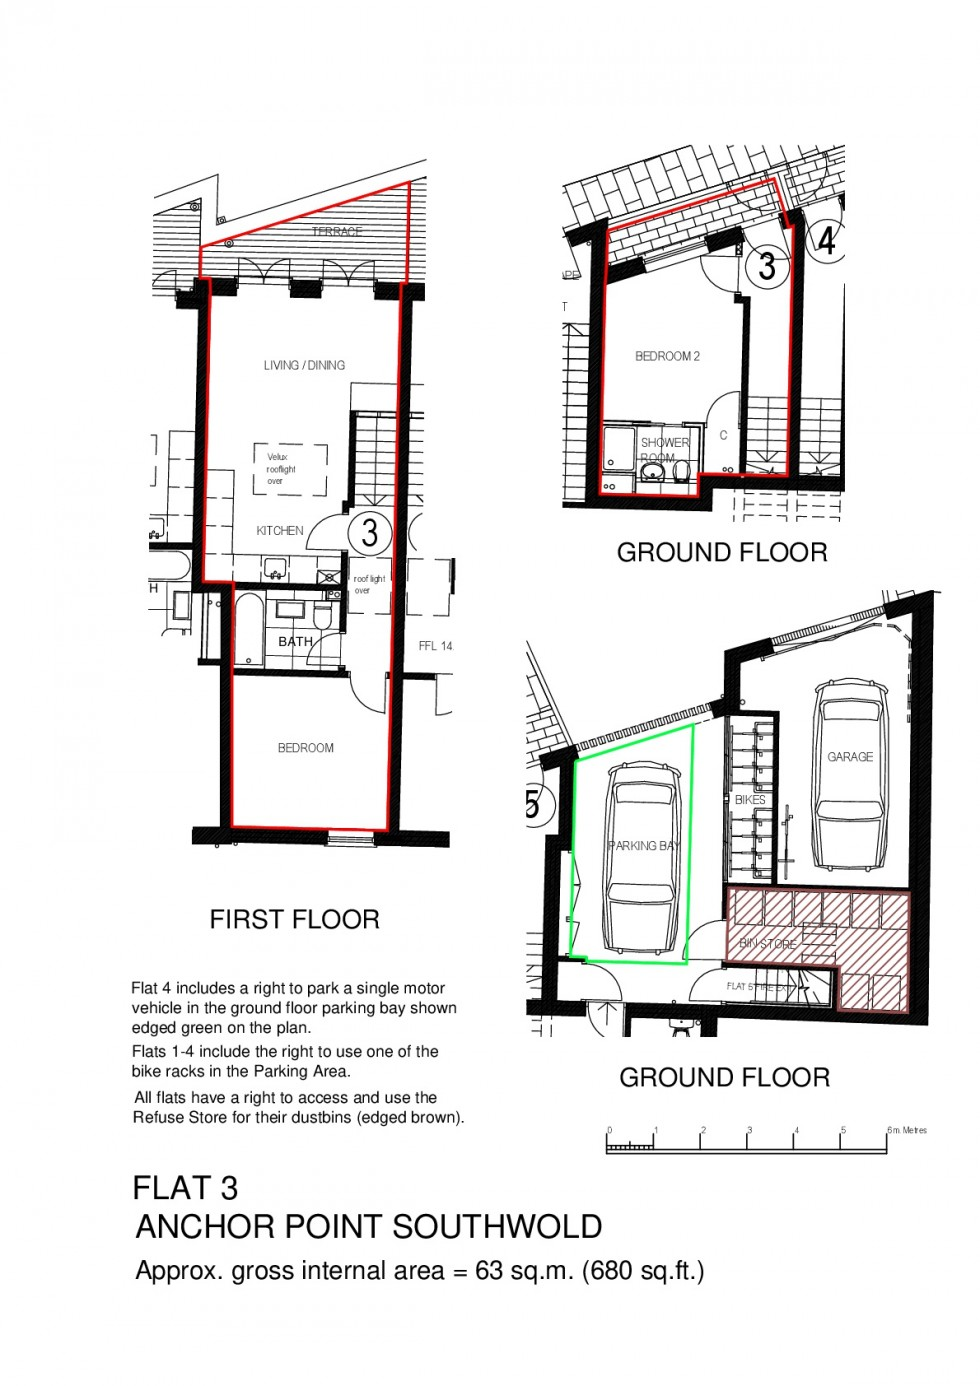 Floorplan for Flat No 3, Anchor Point, Southwold